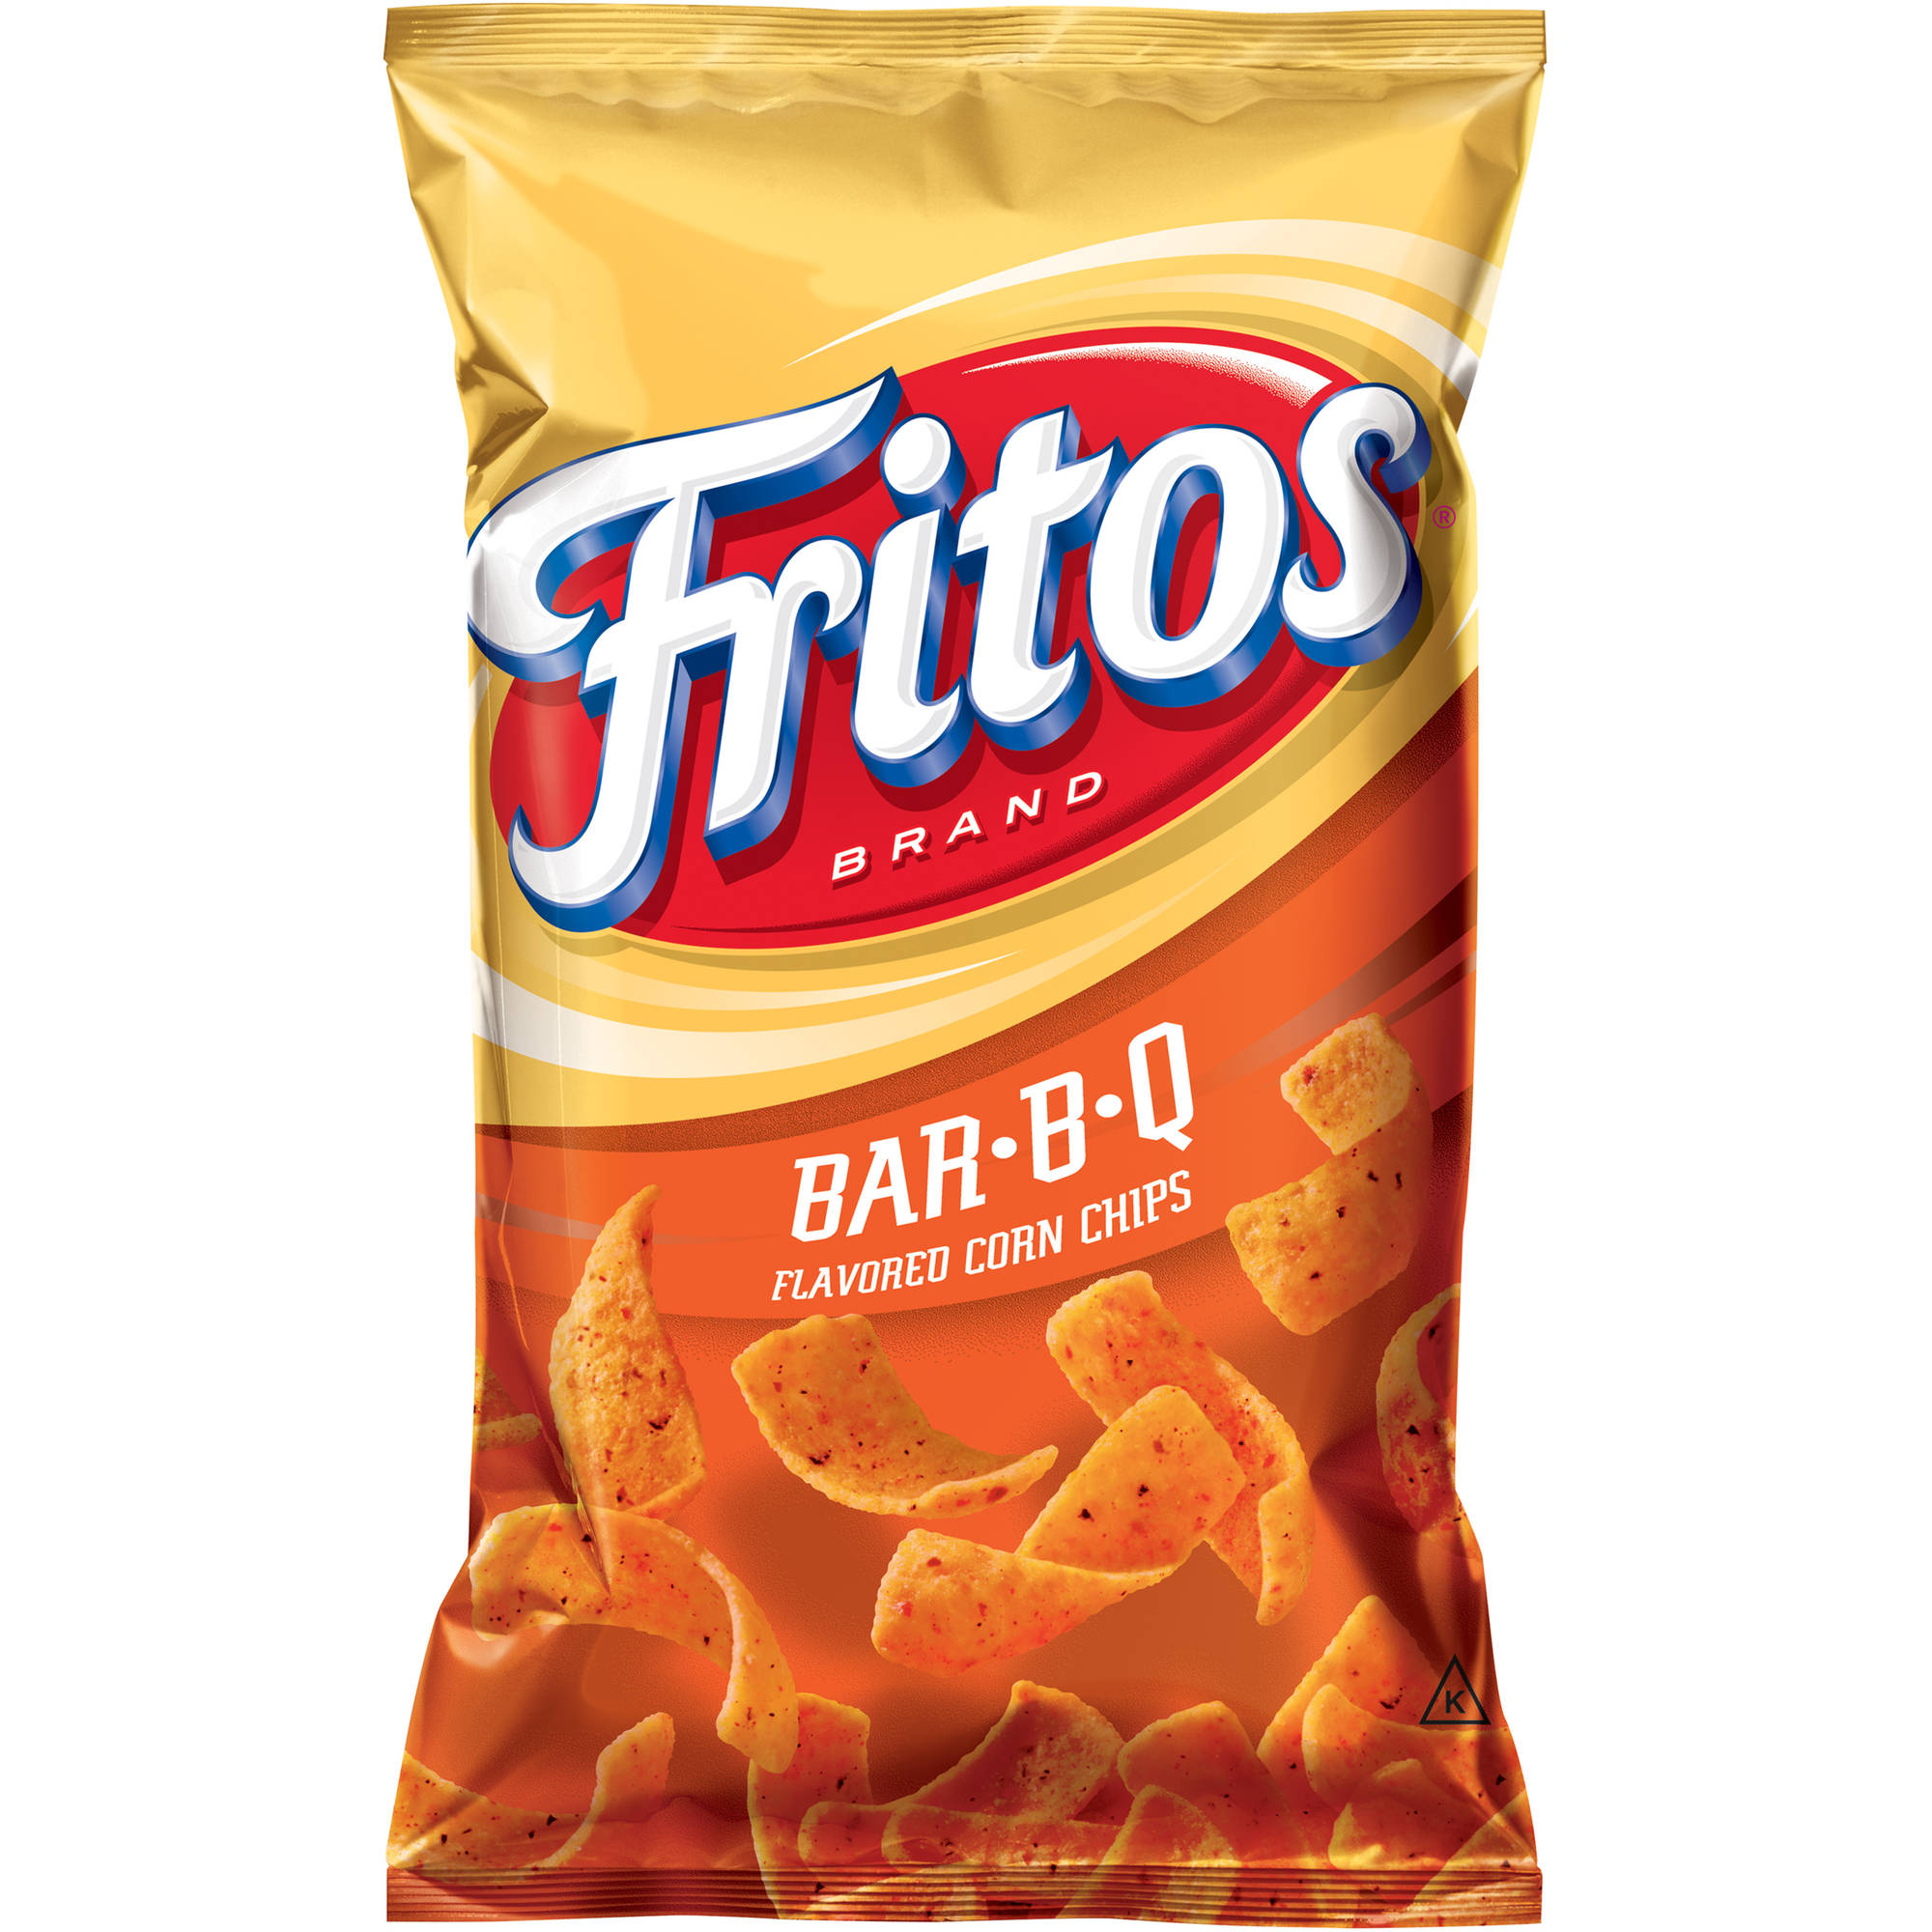 Fritos Barbecue Flavored Corn Chips, 9.25 oz